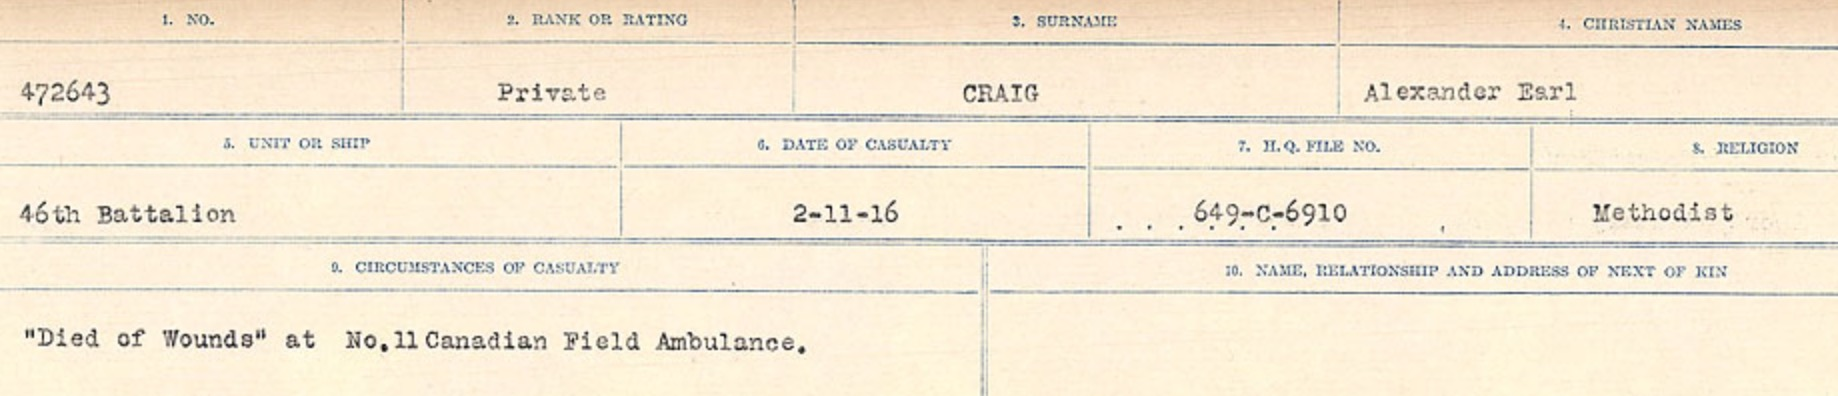 Circumstances of Death Registers– Source: Library and Archives Canada. CIRCUMSTANCES OF DEATH REGISTERS, FIRST WORLD WAR Surnames: CRABB TO CROSSLAND Microform Sequence 24; Volume Number 31829_B016733. Reference RG150, 1992-93/314, 168. Page 49  of 788.